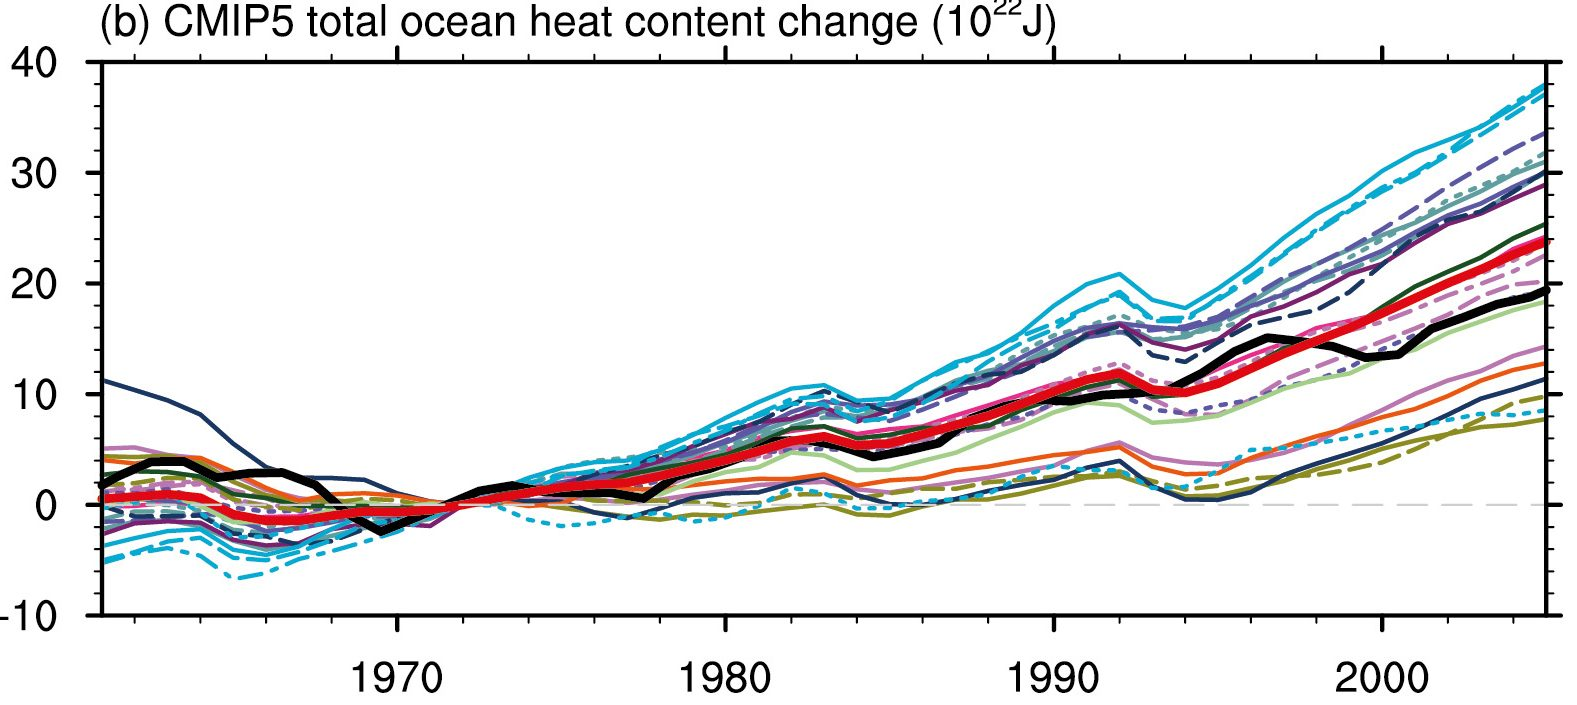 Changes in ocean heat content simulated by the CMIP5 models (thin lines), and their multi model mean (red thick line), compared to observations (black thick line). From ipcc.ch.